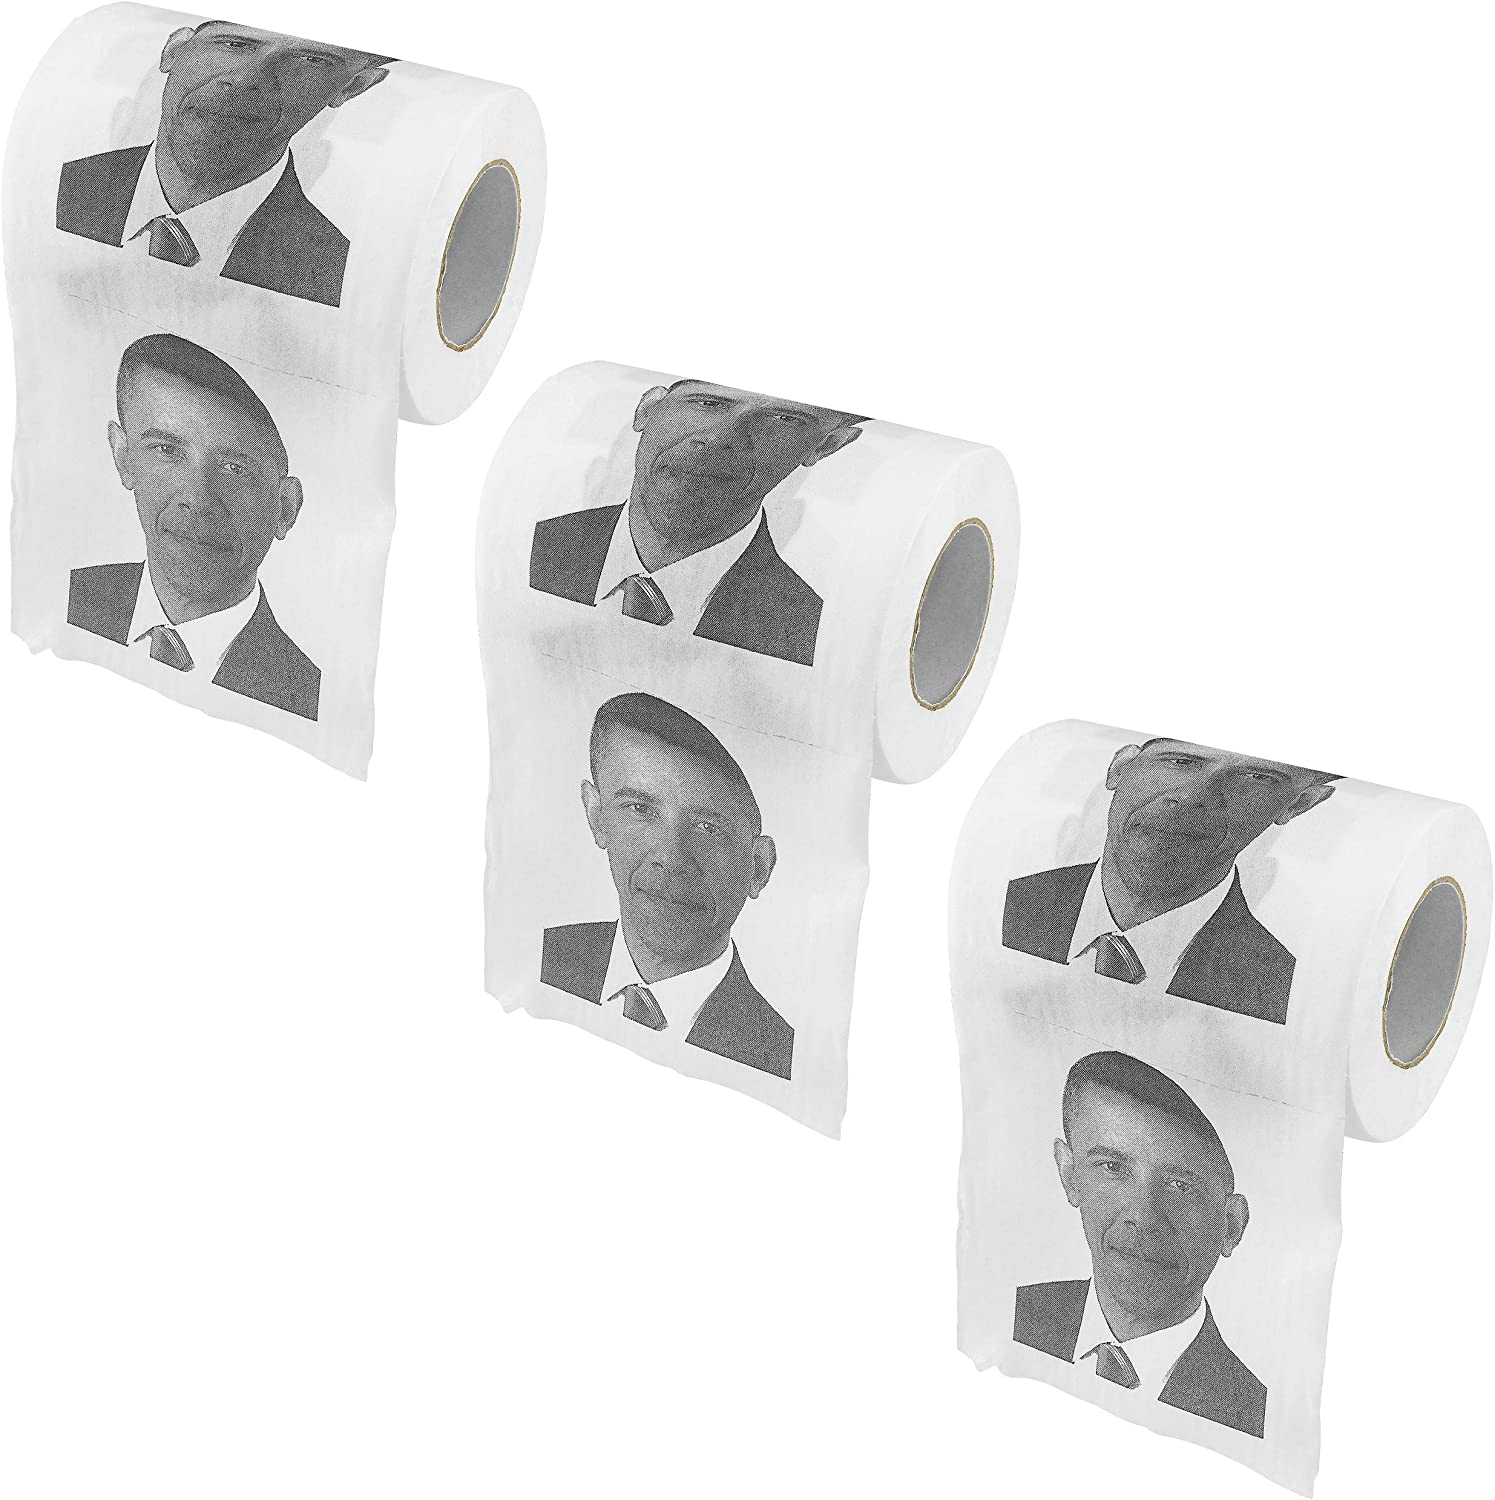 Alexandria Ocasio-Cortez Toilet Paper Meme Funny Novelty Toilet Paper Gag Gift for Democrats /& Republicans 3 Ply AOC Toilet Paper Wheres My Free Shit Socialist TP 250 Sheets Per Roll